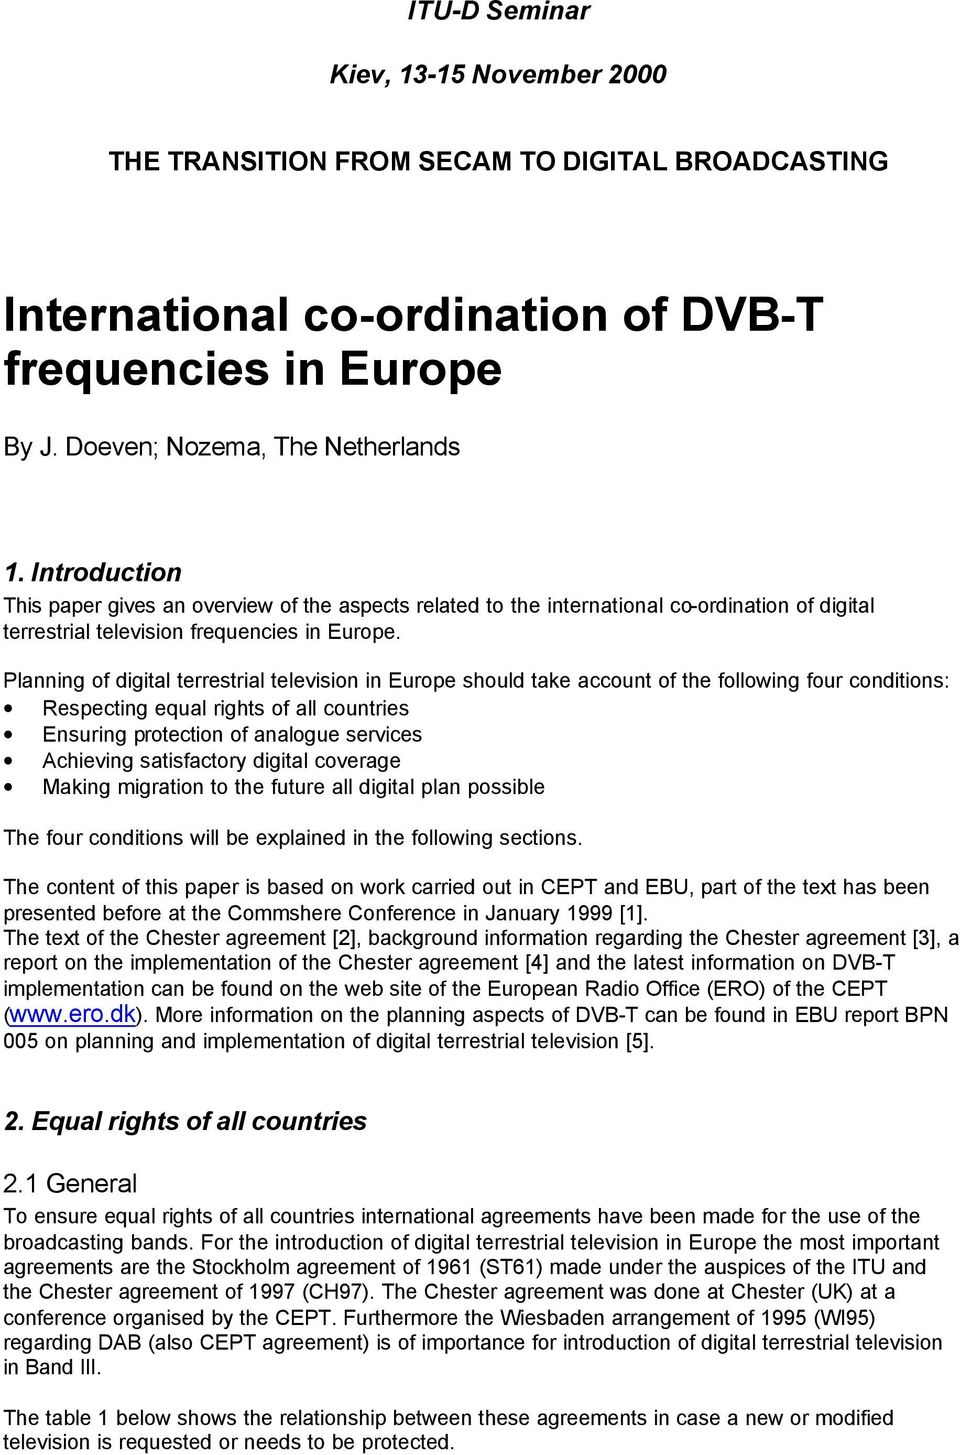 Planning of digital terrestrial television in Europe should take account of the following four conditions: Respecting equal rights of all countries Ensuring protection of analogue services Achieving